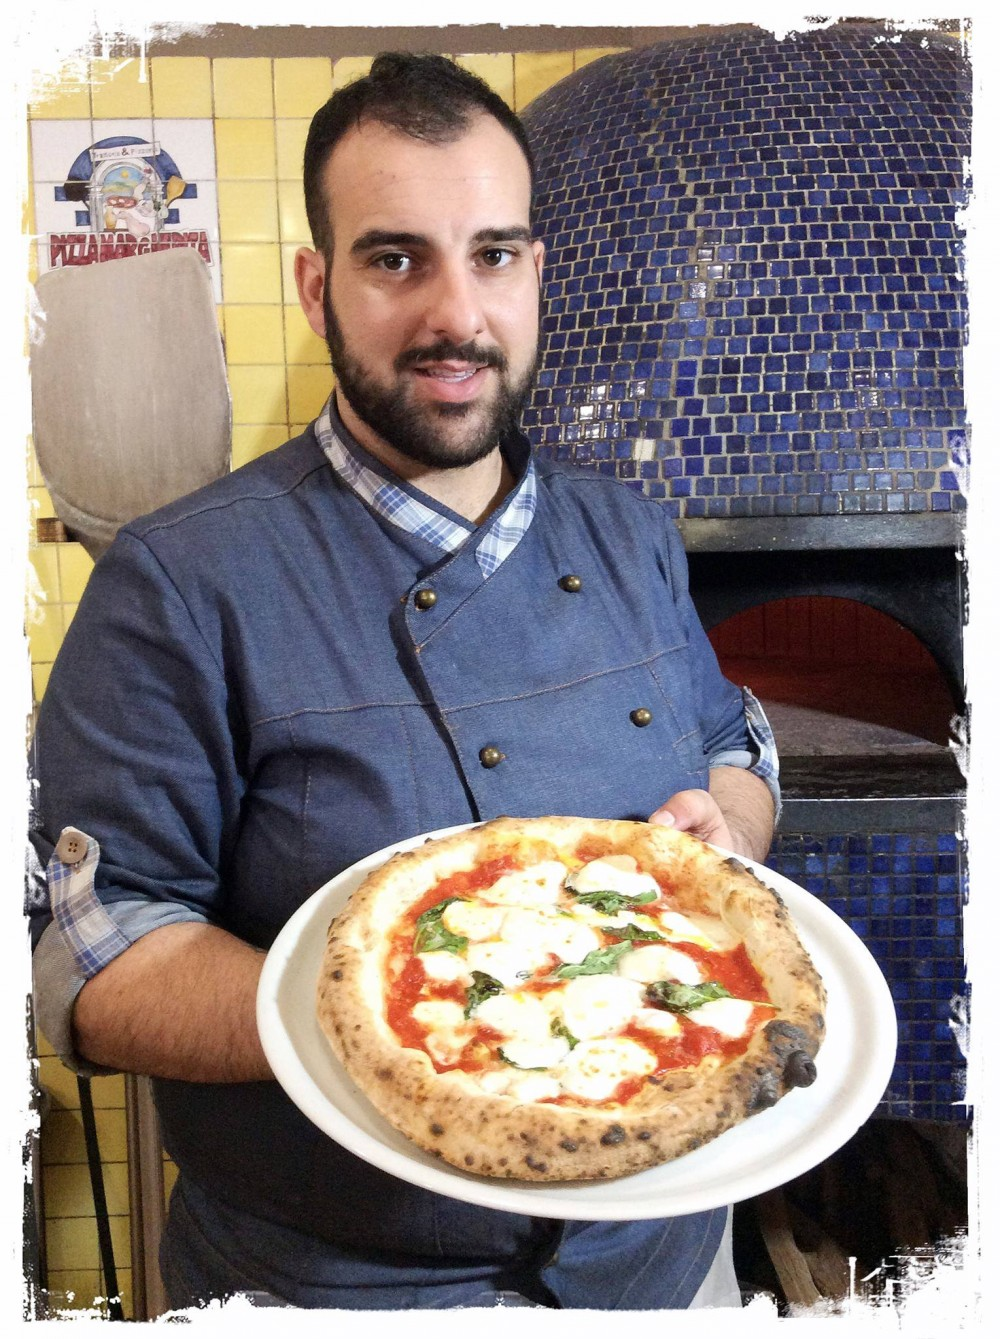 Pizza Margherita Daniele Sellami e la sua arte per la pizza